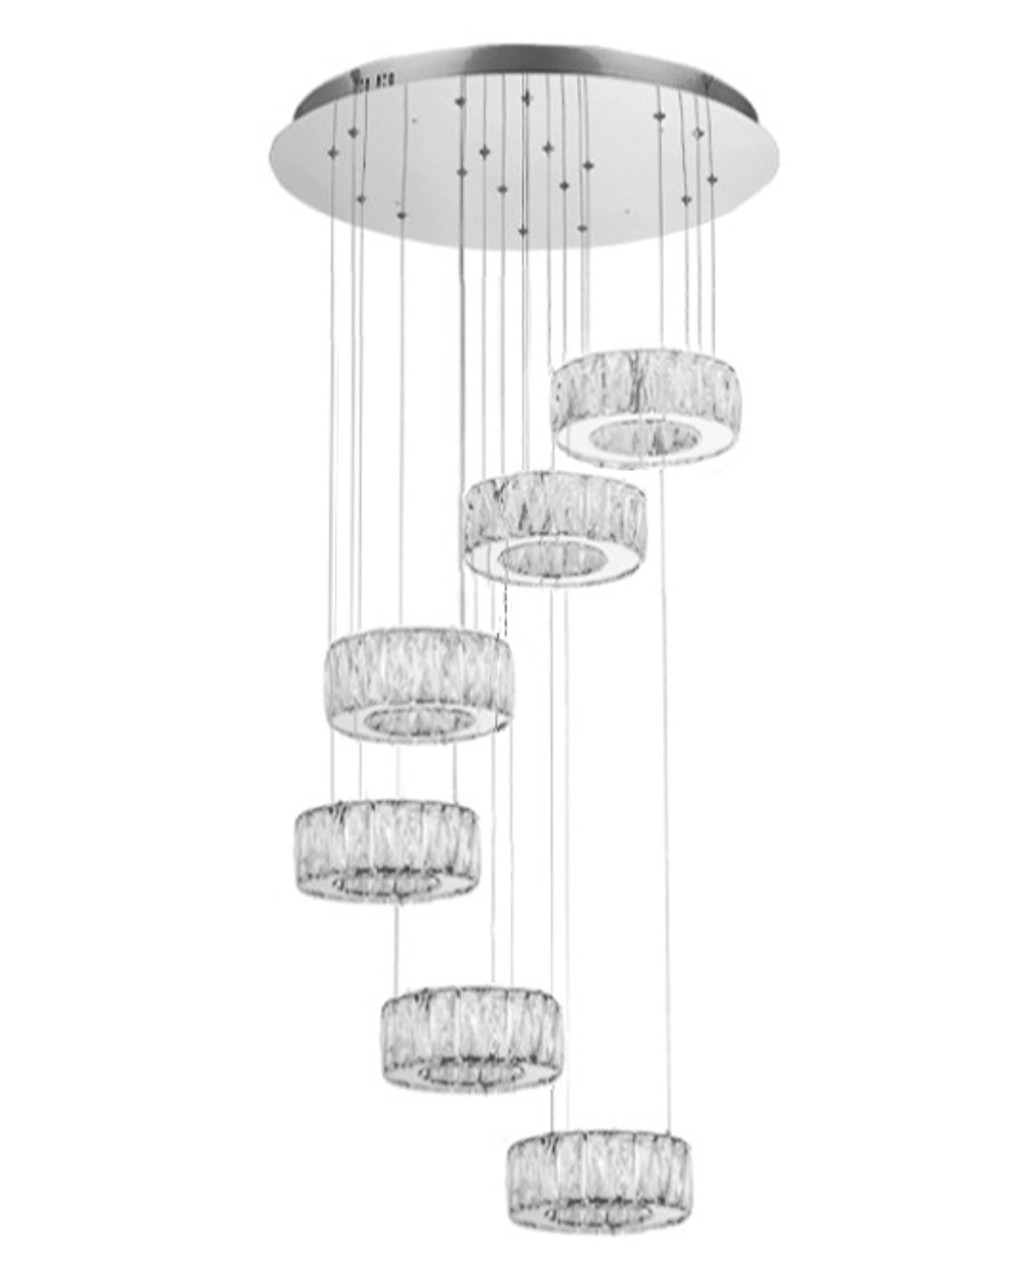 Multi Ring Led Modern Crystal Chandelier High Ceiling Lighting Fixture Ld22261 High Ceiling Chandeliers Montreal Laval Quebec Ottawa Toronto Canada Usa Online Sale